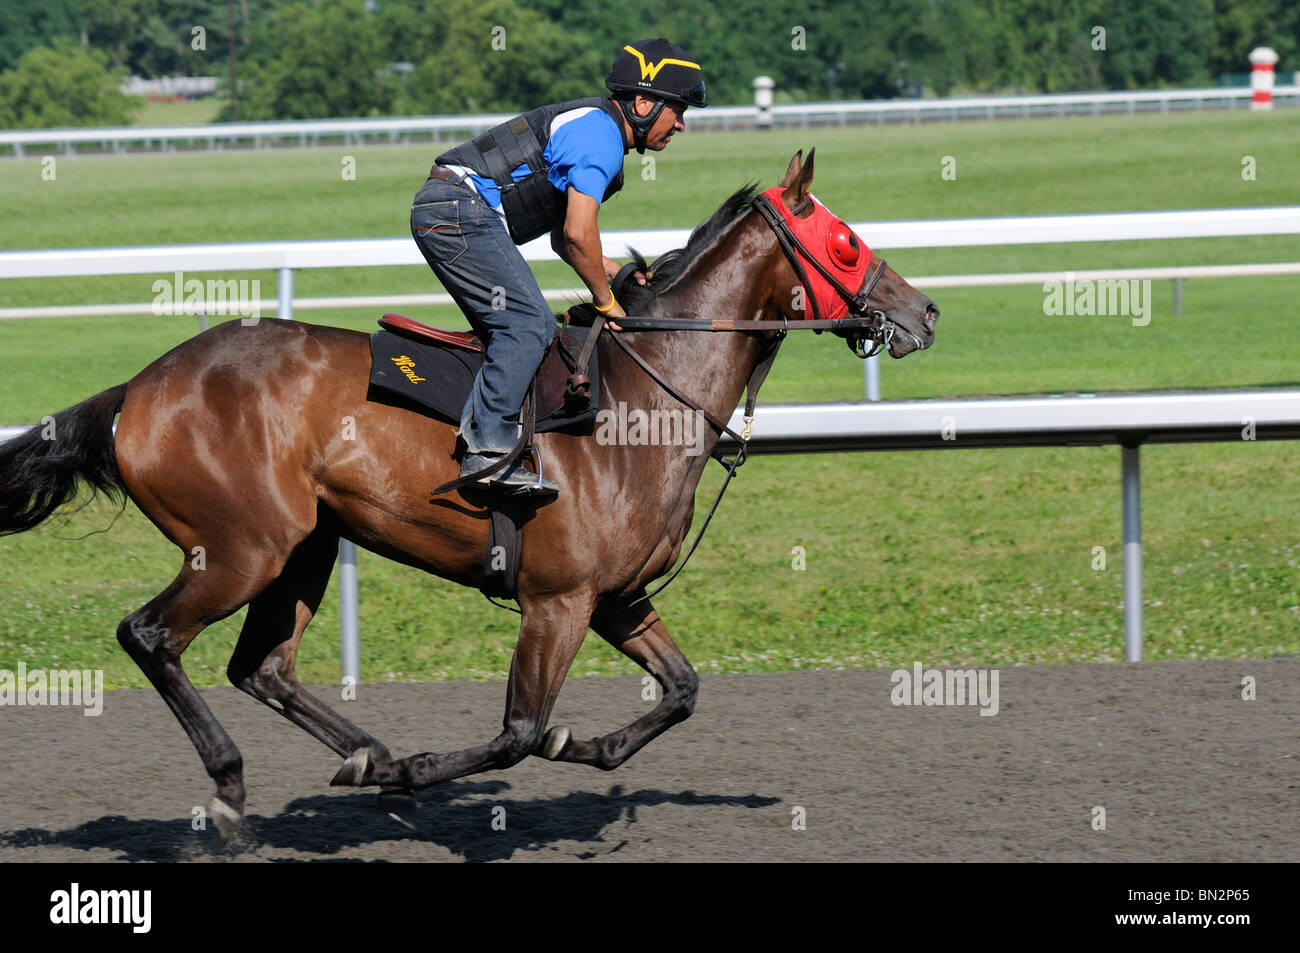 Thoroughbred horse and exercise jockey at the Keeneland horse racing track in Lexington, Kentucky USA - Stock Image